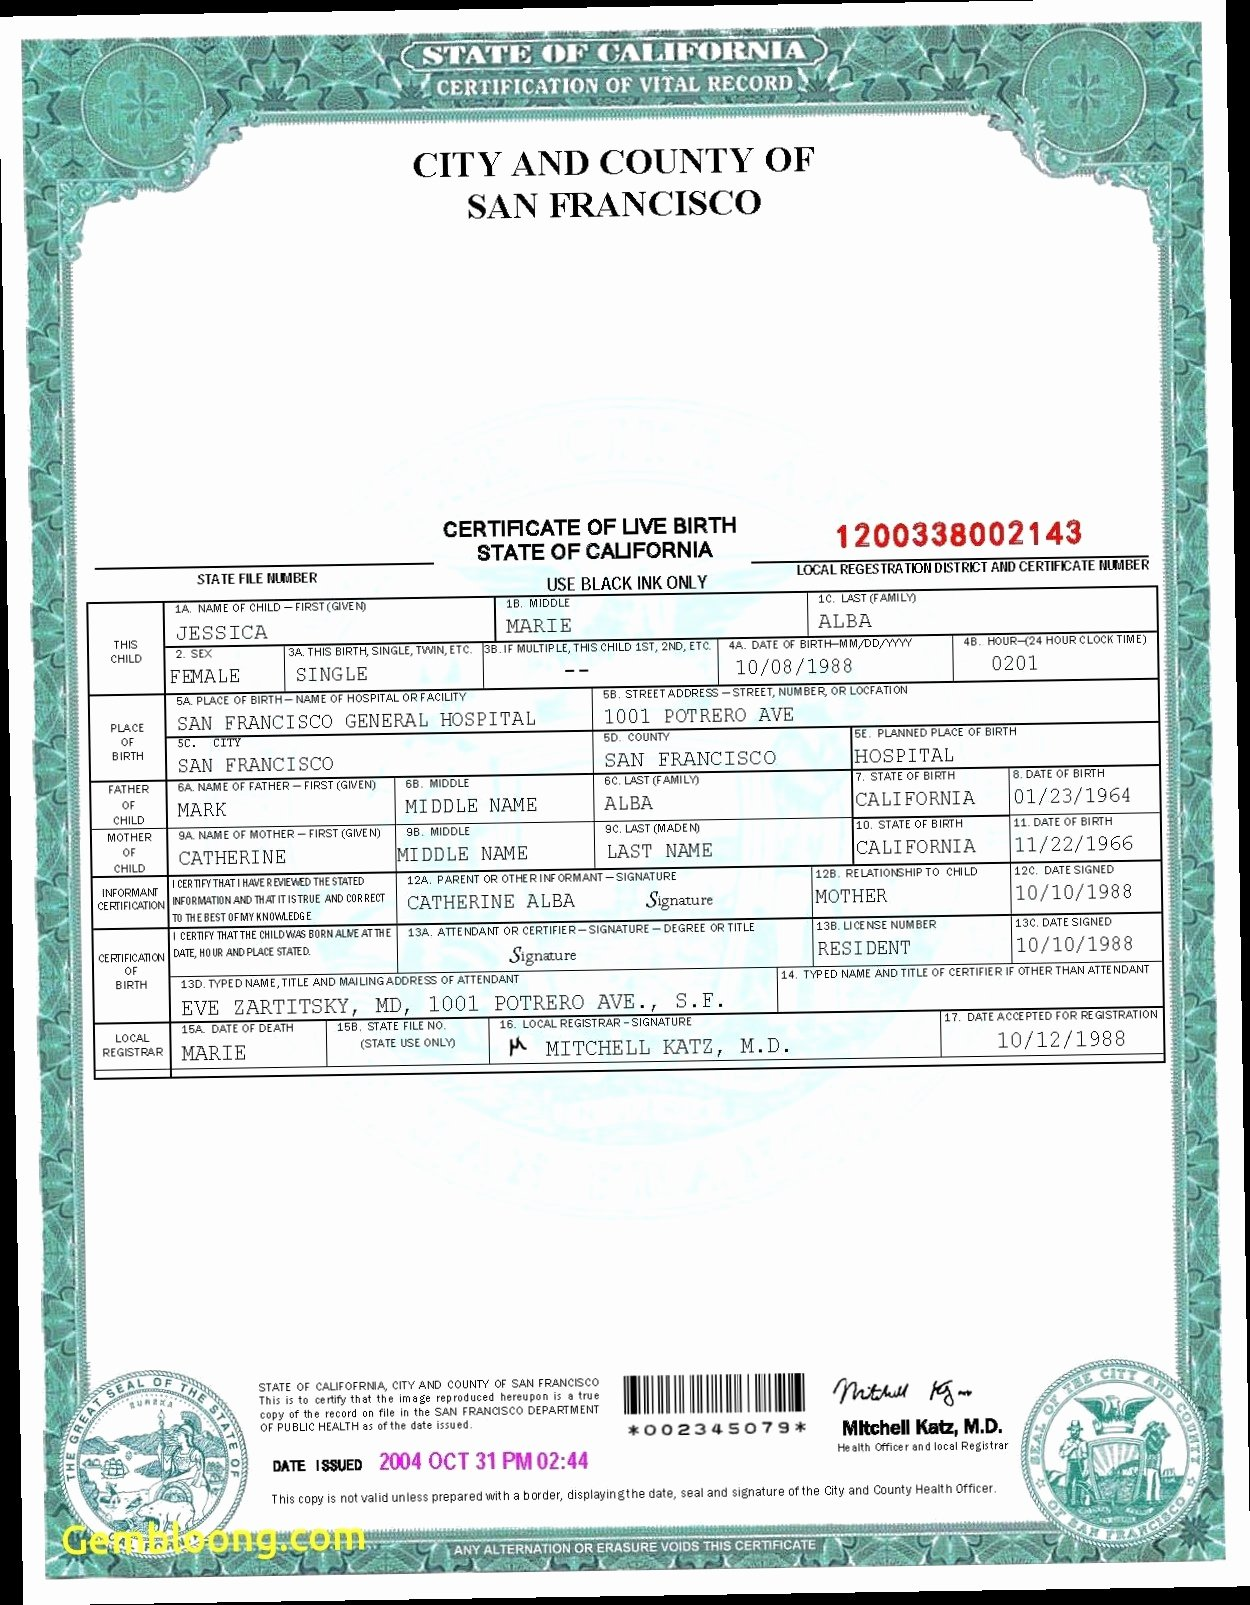 Proof Of Car Insurance Template New Proof Car Insurance Template How to Leave Proof Car